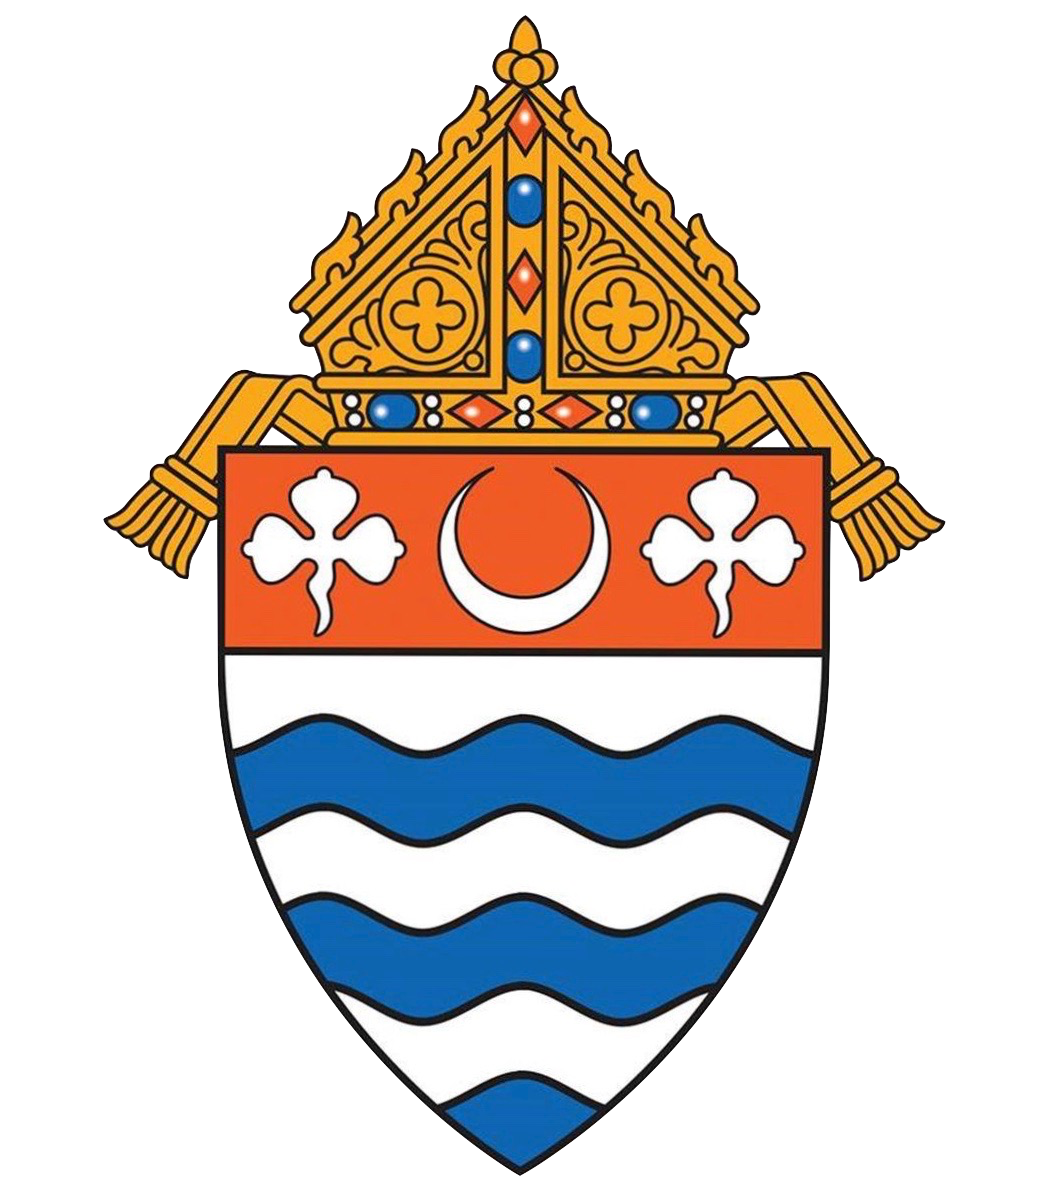 cardinal joseph tobin cssr archbishop of newark has announced that representatives of the new jersey catholic conference will meet with kenneth